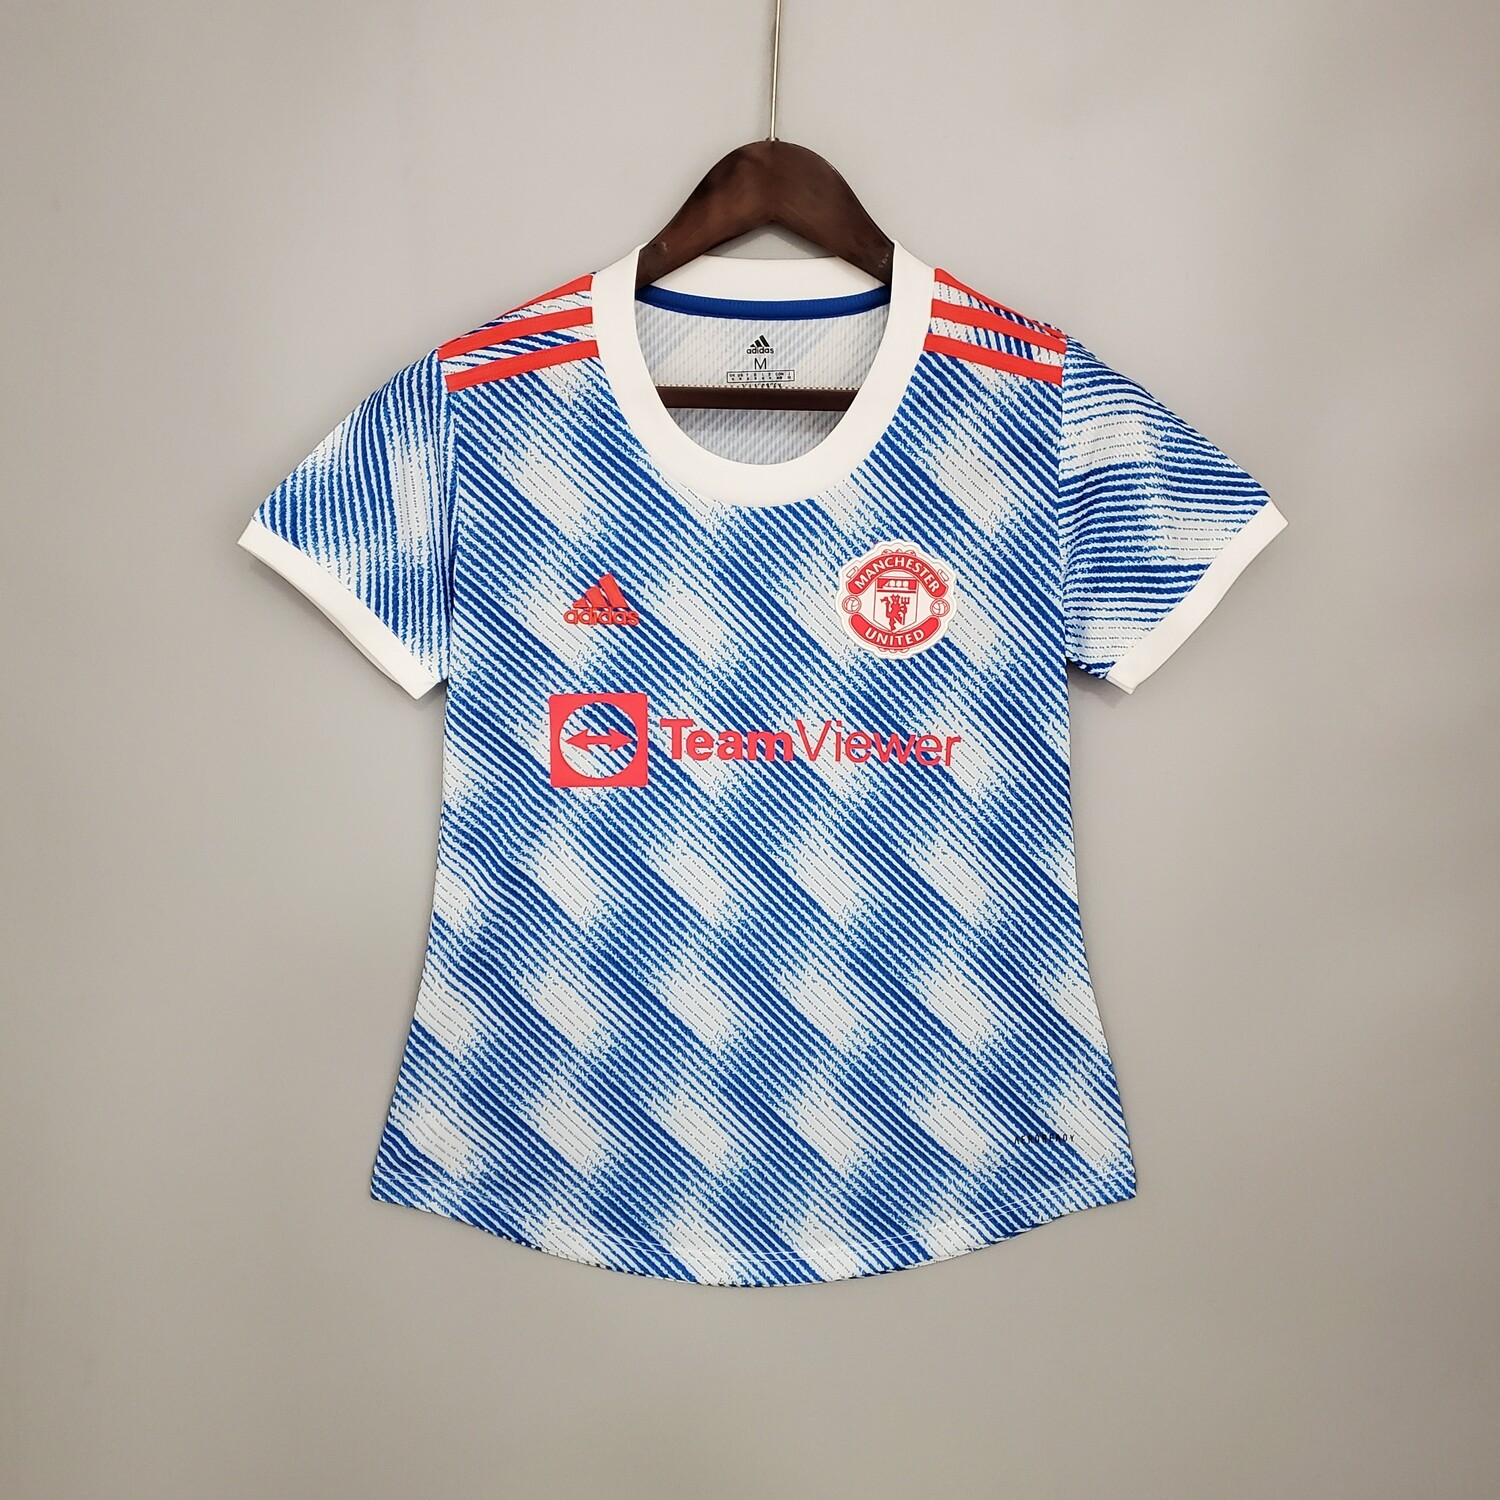 Manchester United Away 2021-22 Women's Jersey [Pre-paid Only]